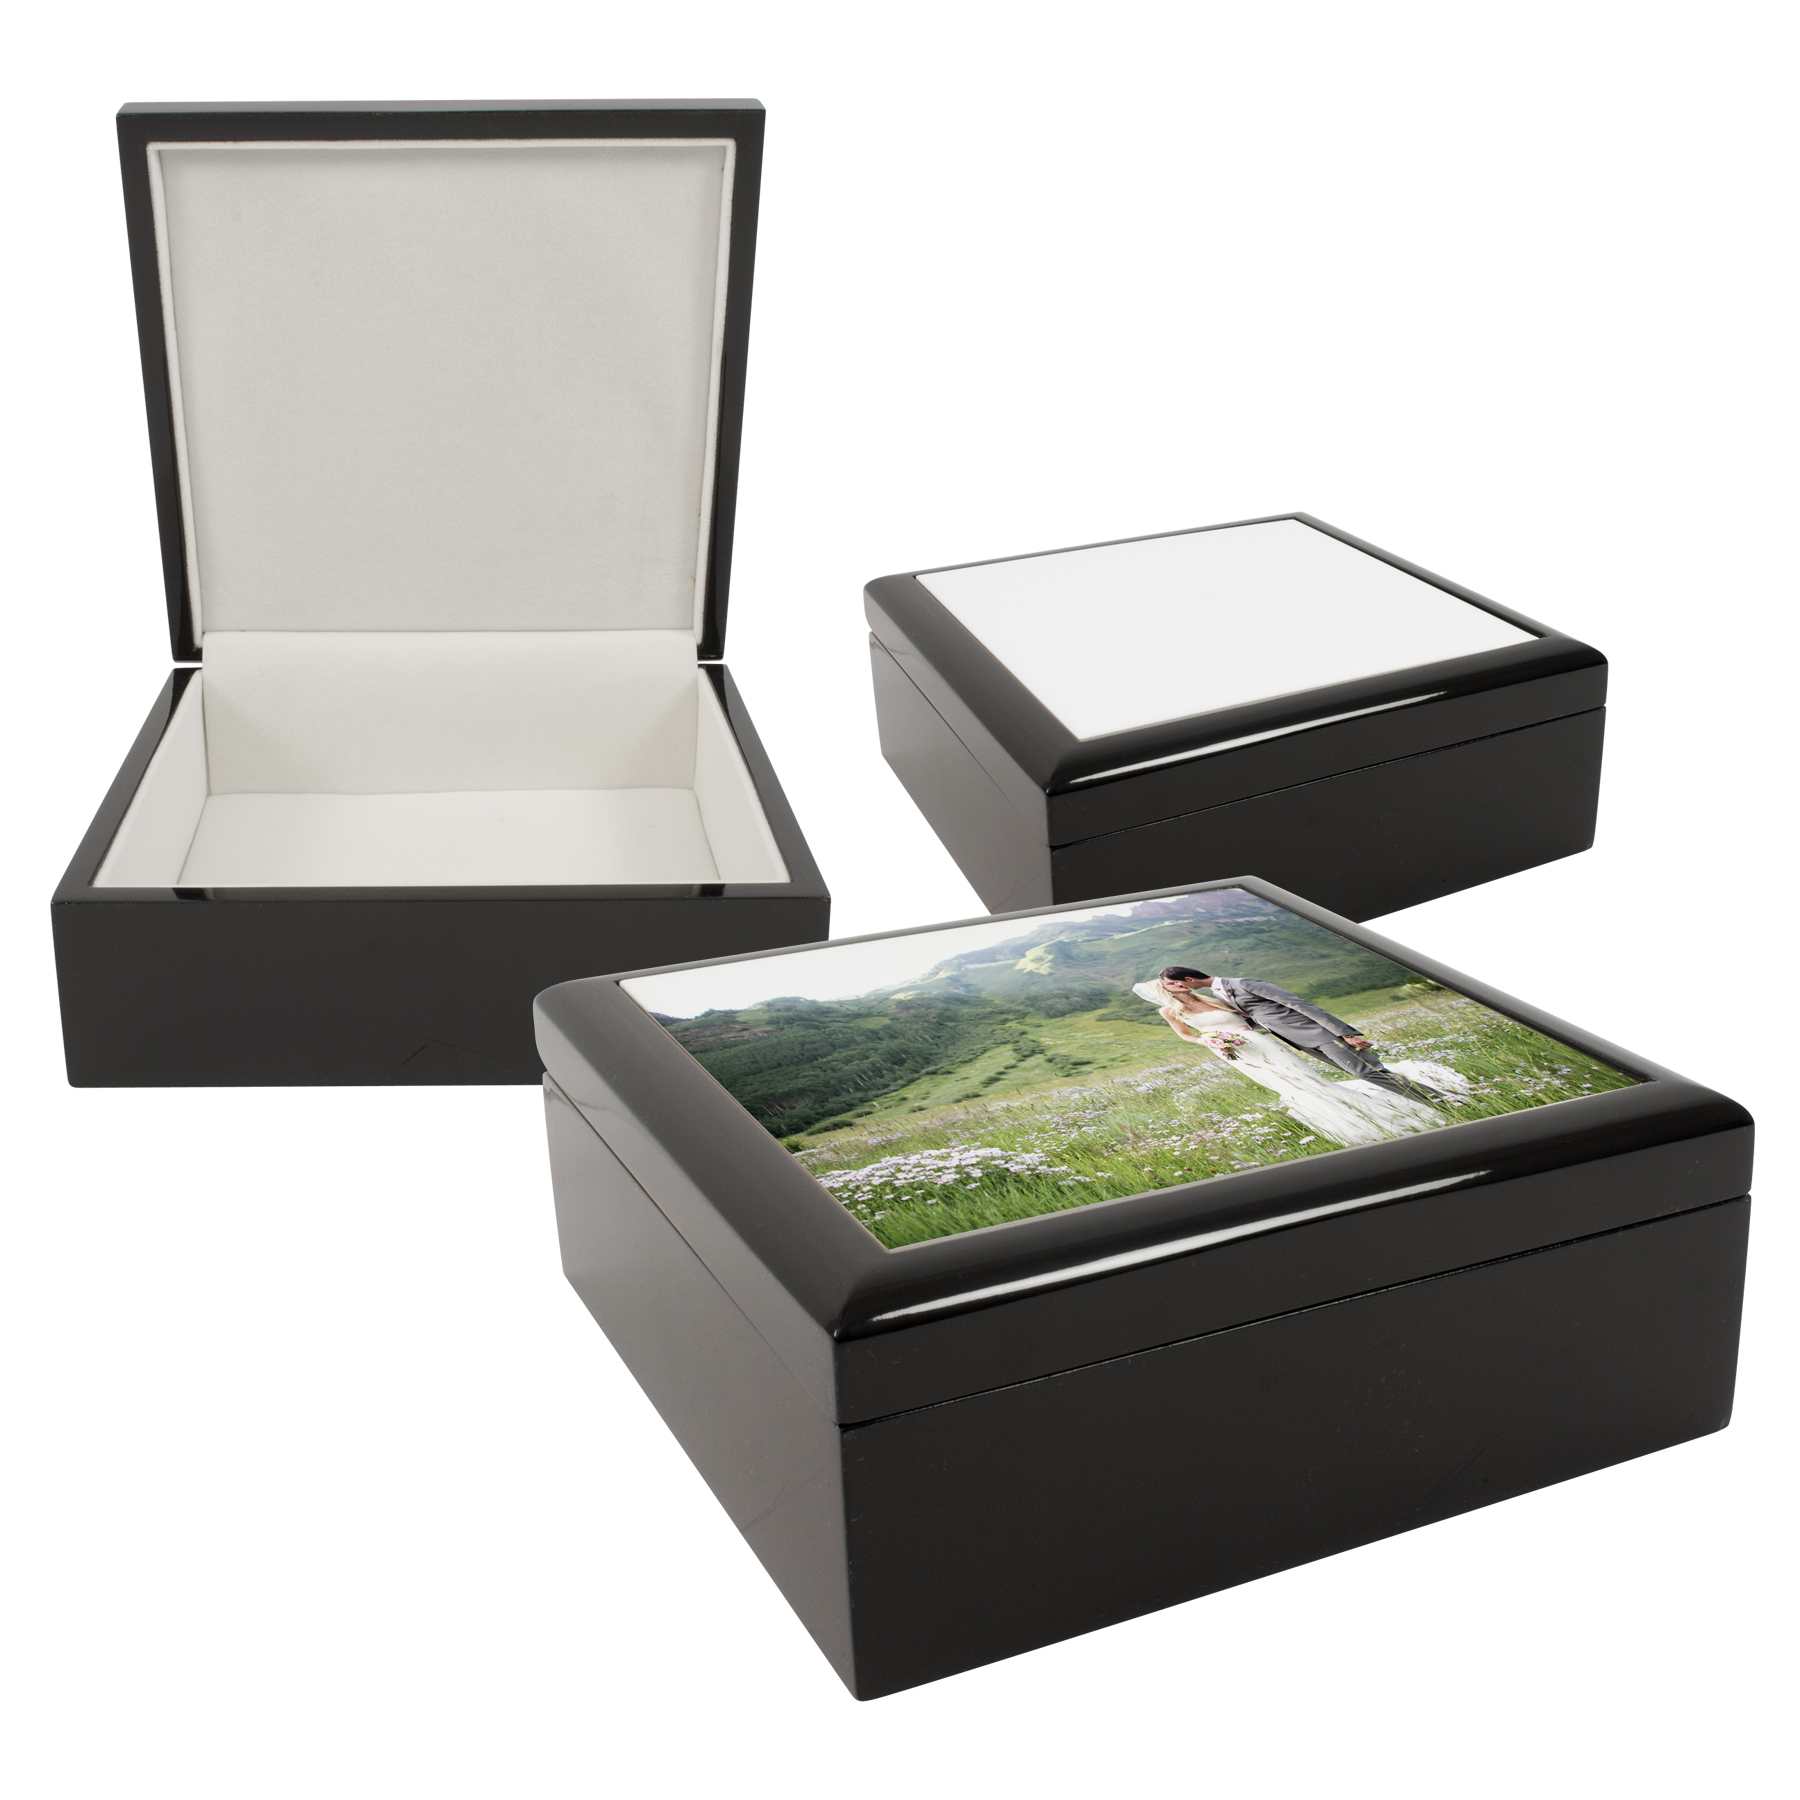 6 Quot X 6 Quot Jewelry Box With Sublimation Photo Tile Lid Insert